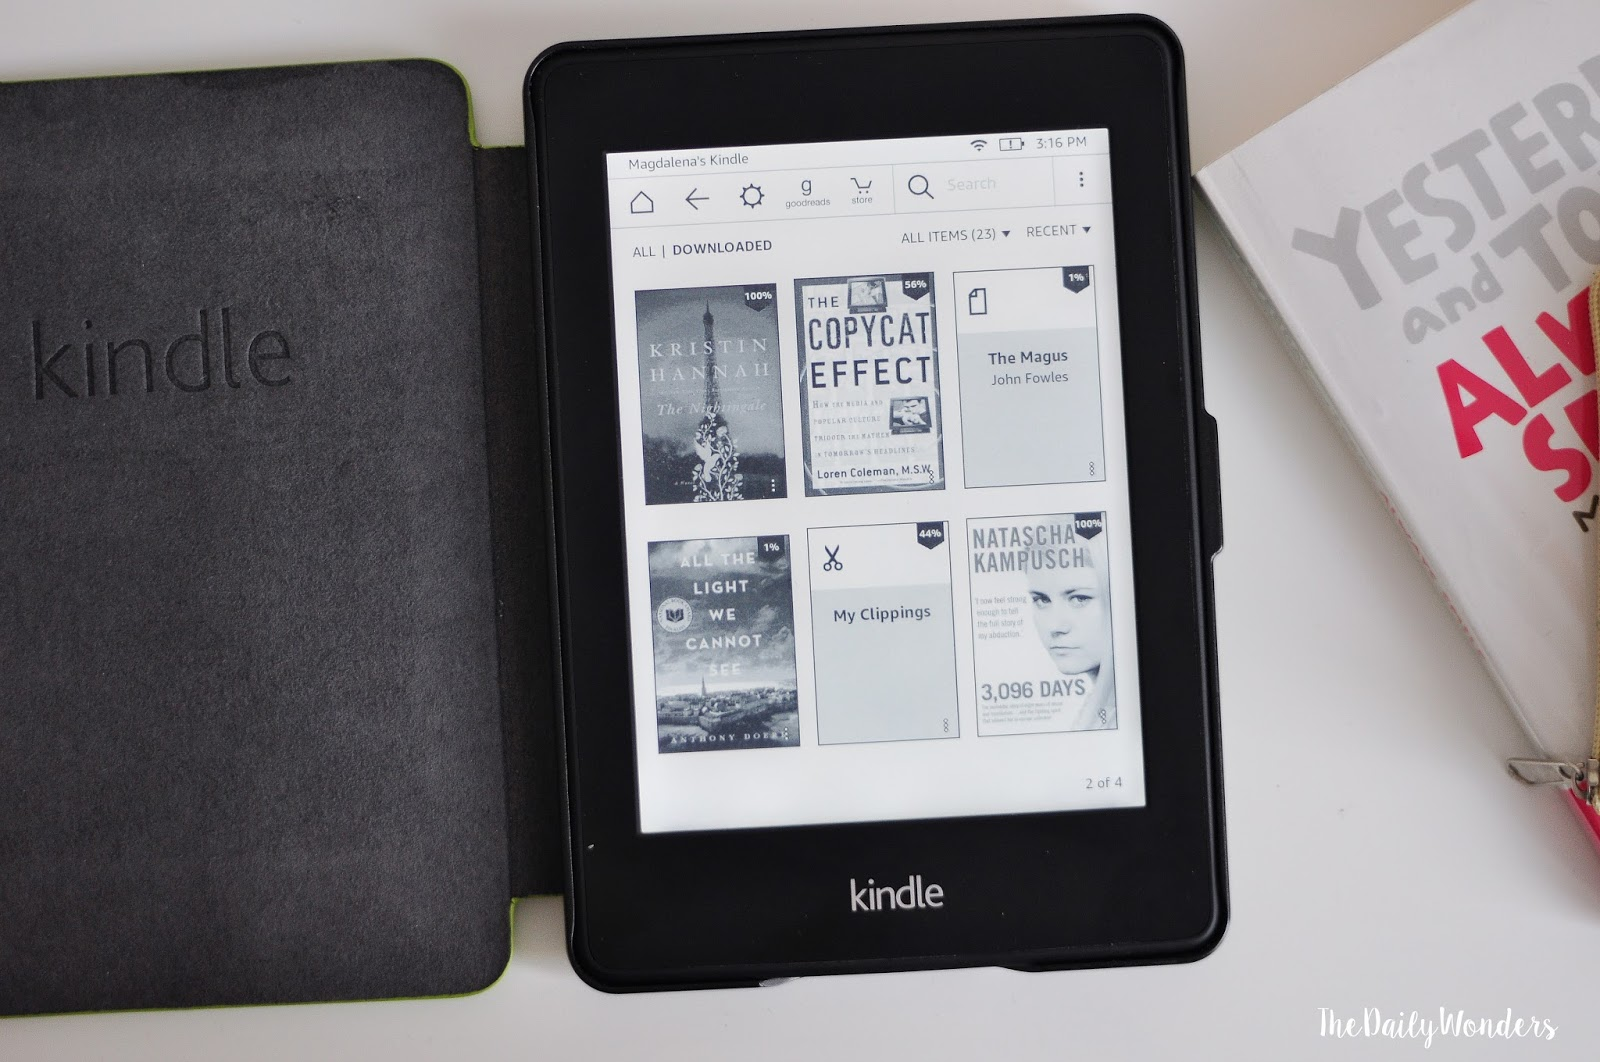 Kindle Amazon Paperwhite opinion